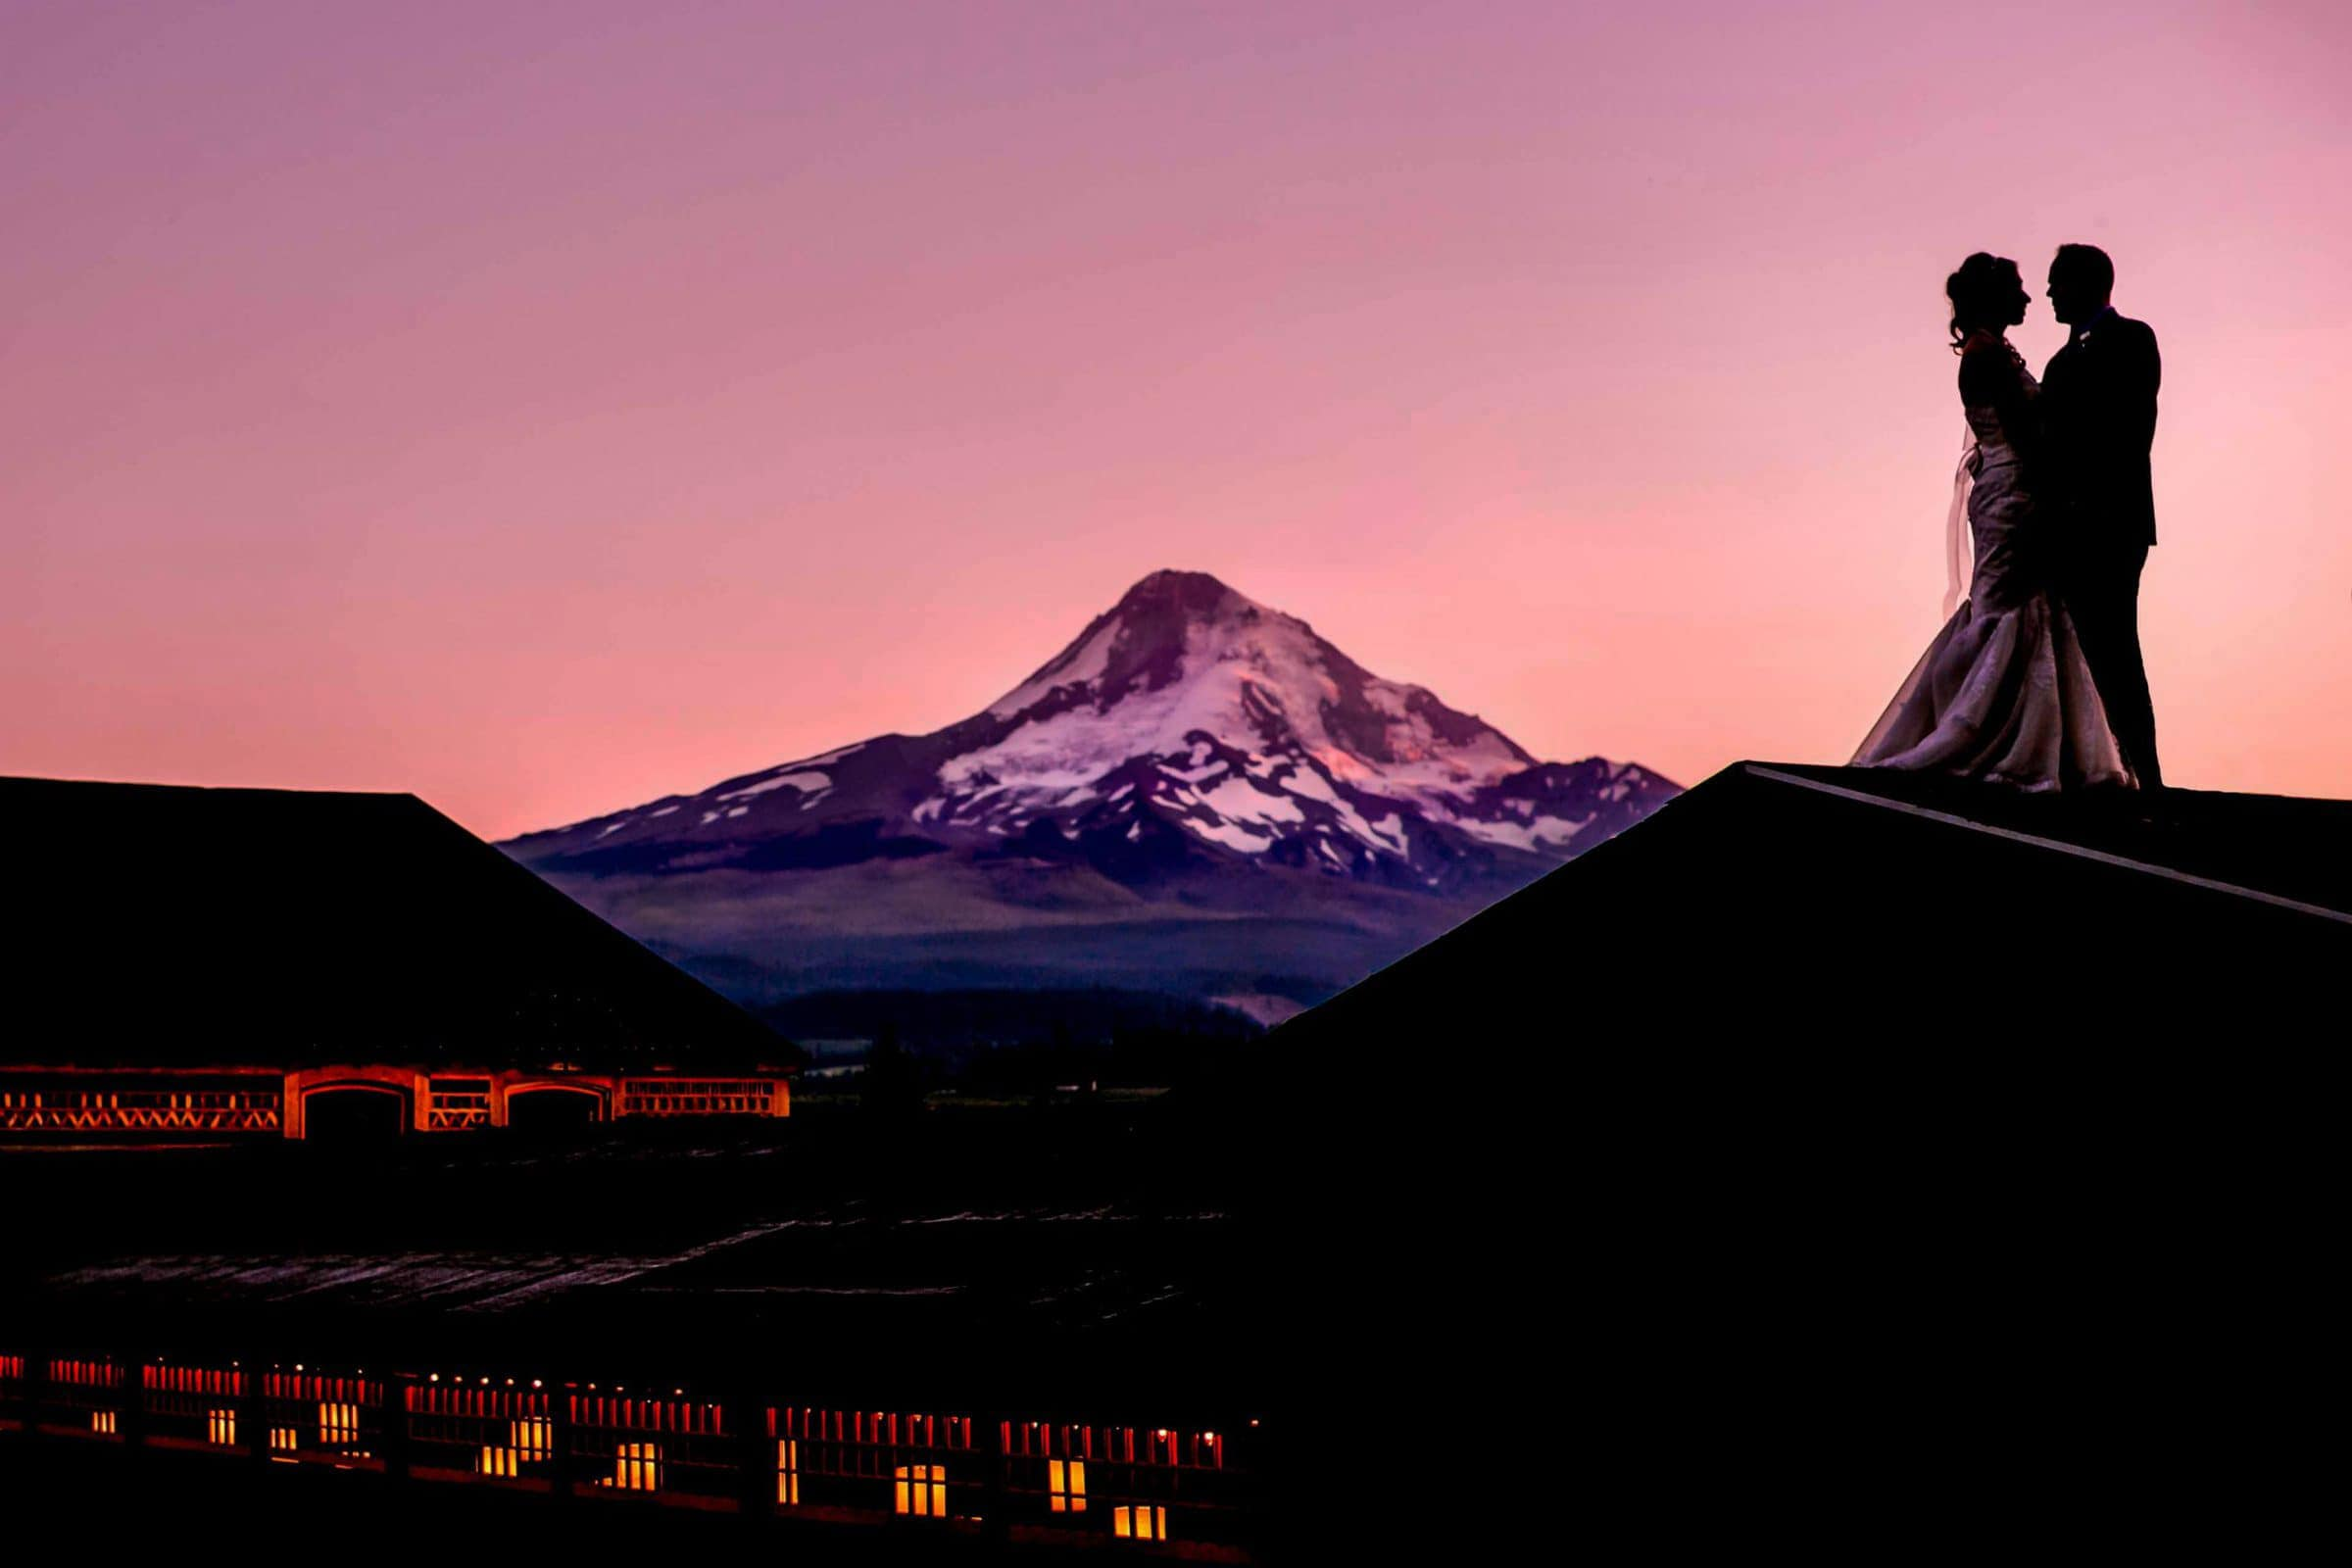 Gorgeous capture of Bride and Groom ontop of Mt Hood Organic Farms rooftop with Mt Hood at sunset